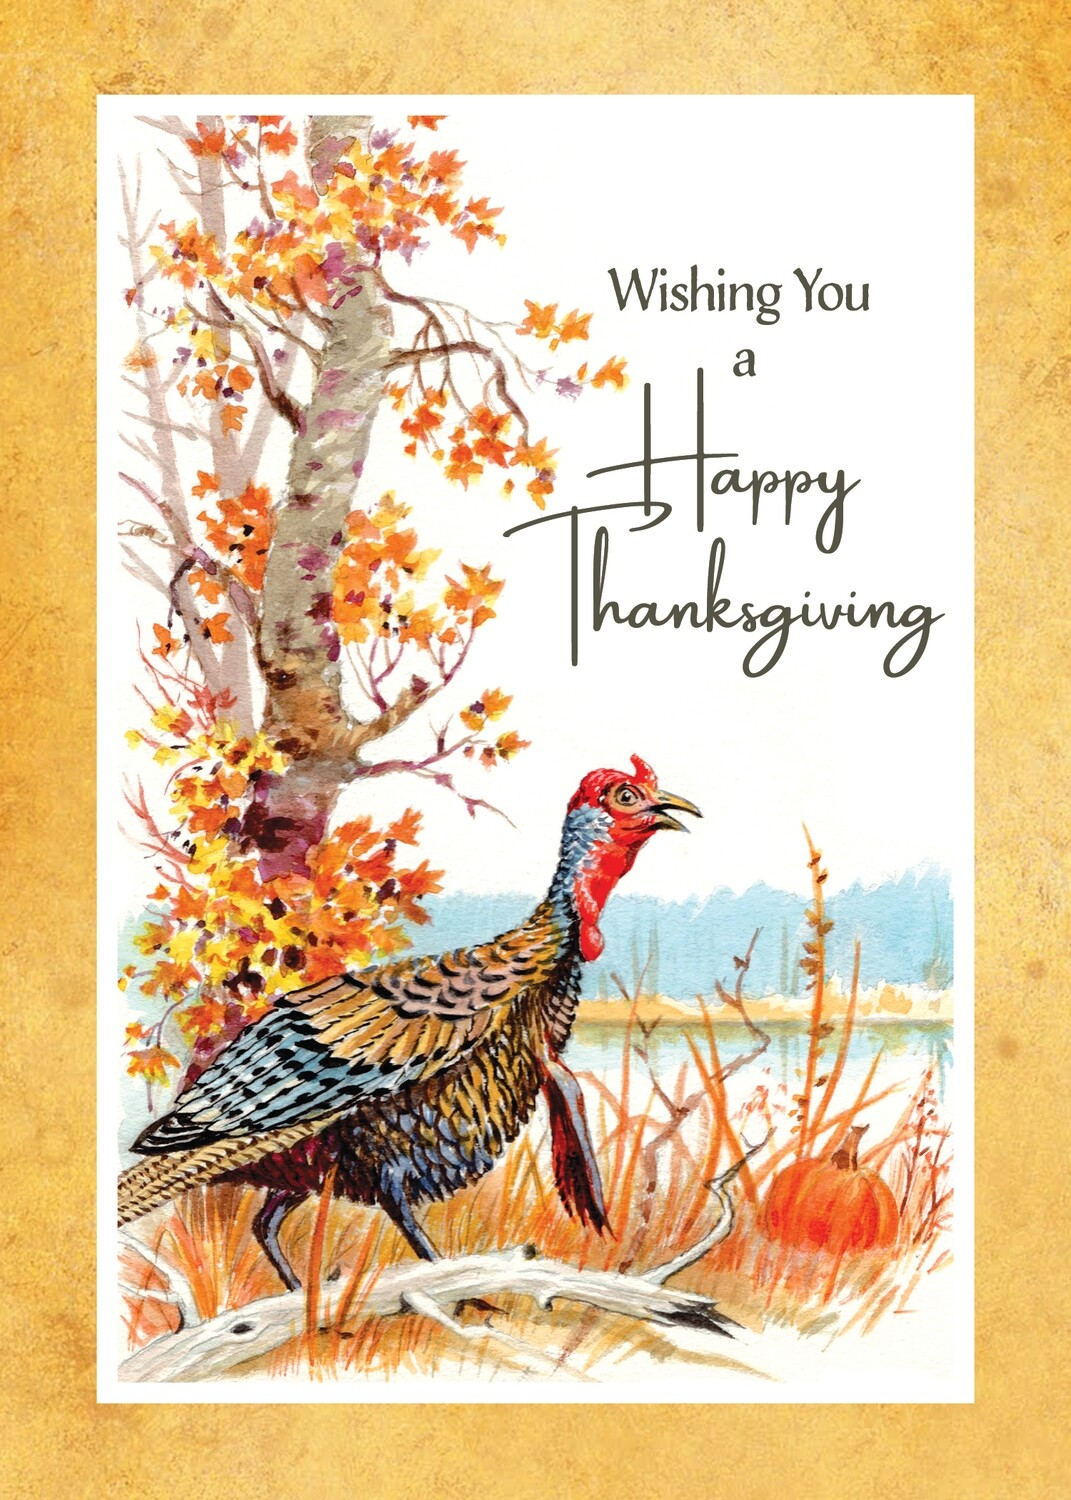 FRS 629 / 7977 Thanksgiving Card